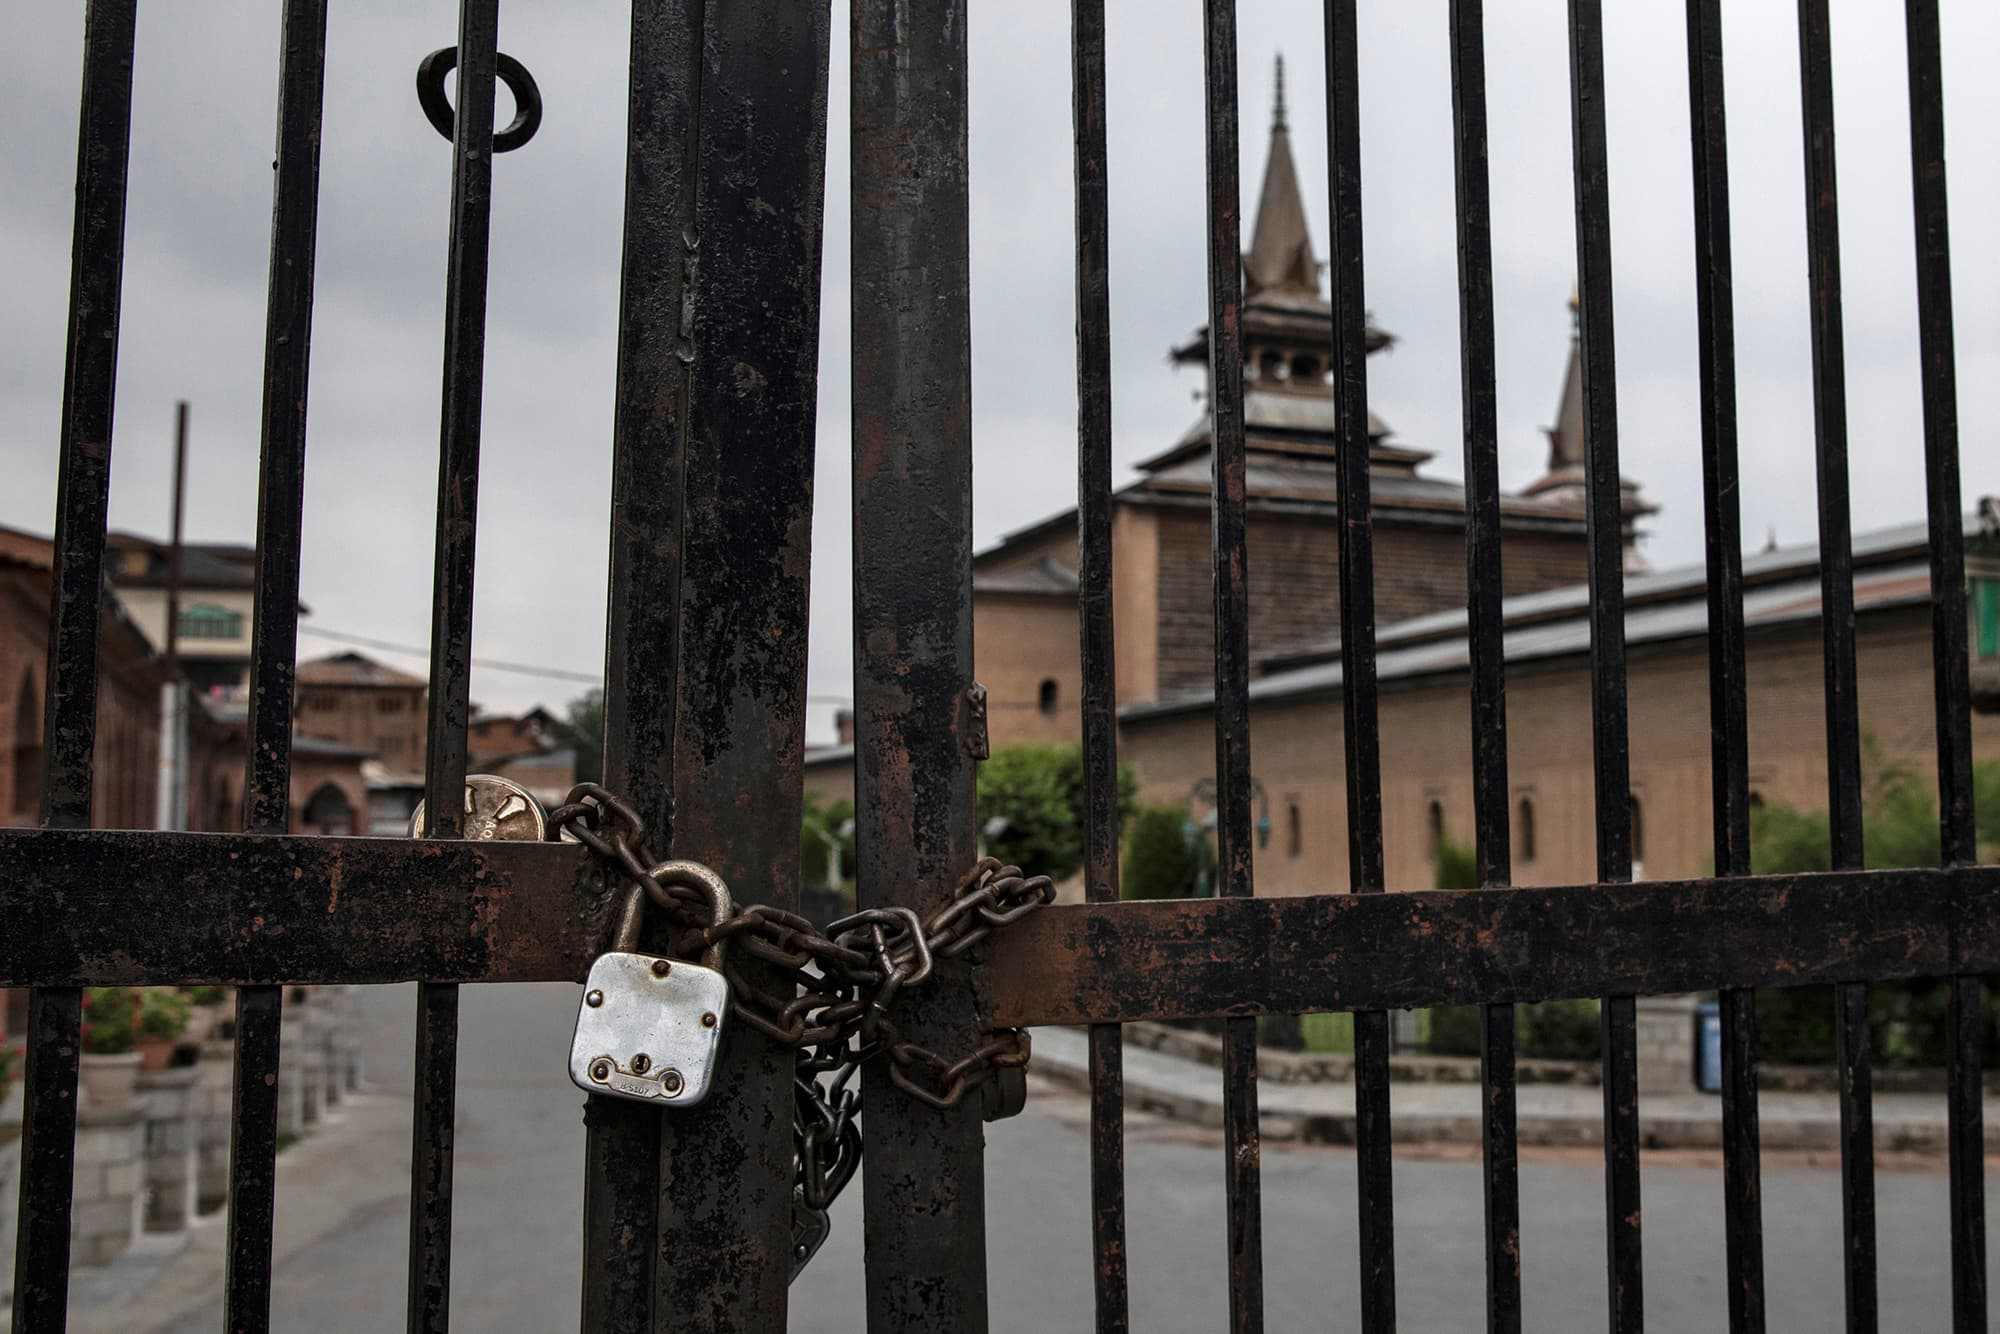 Jamia Masjid in Srinagar is seen locked during restrictions ahead of the Muslim holiday of Eidul Azha as Indian-occupied Kashmir remains under curfew for the 7th consecutive day. ─ Reuters